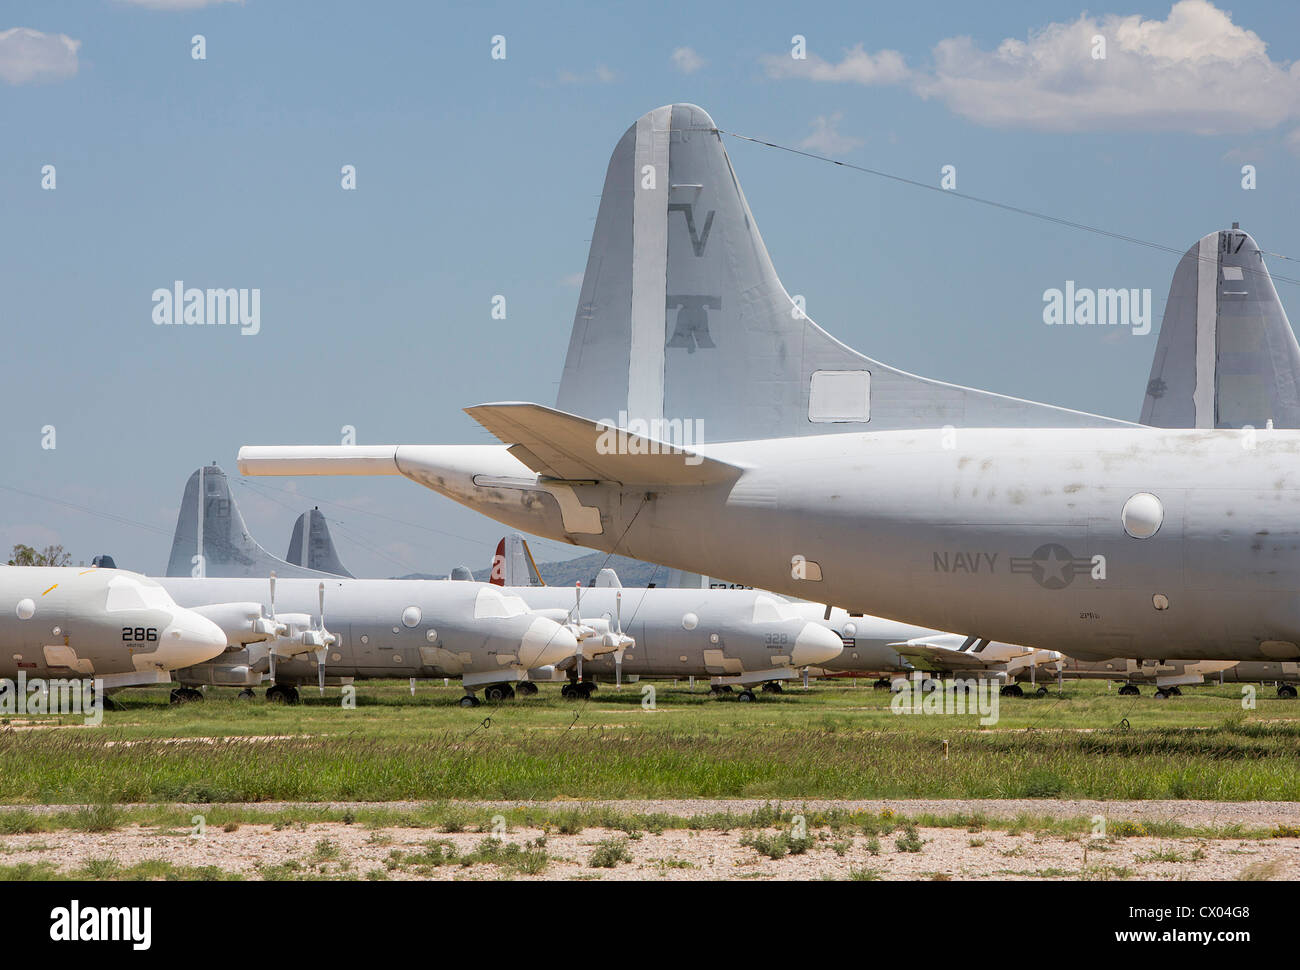 P-3 Orion aircraft in storage at the 309th Aerospace Maintenance and Regeneration Group at Davis-Monthan Air Force Base. Stock Photo